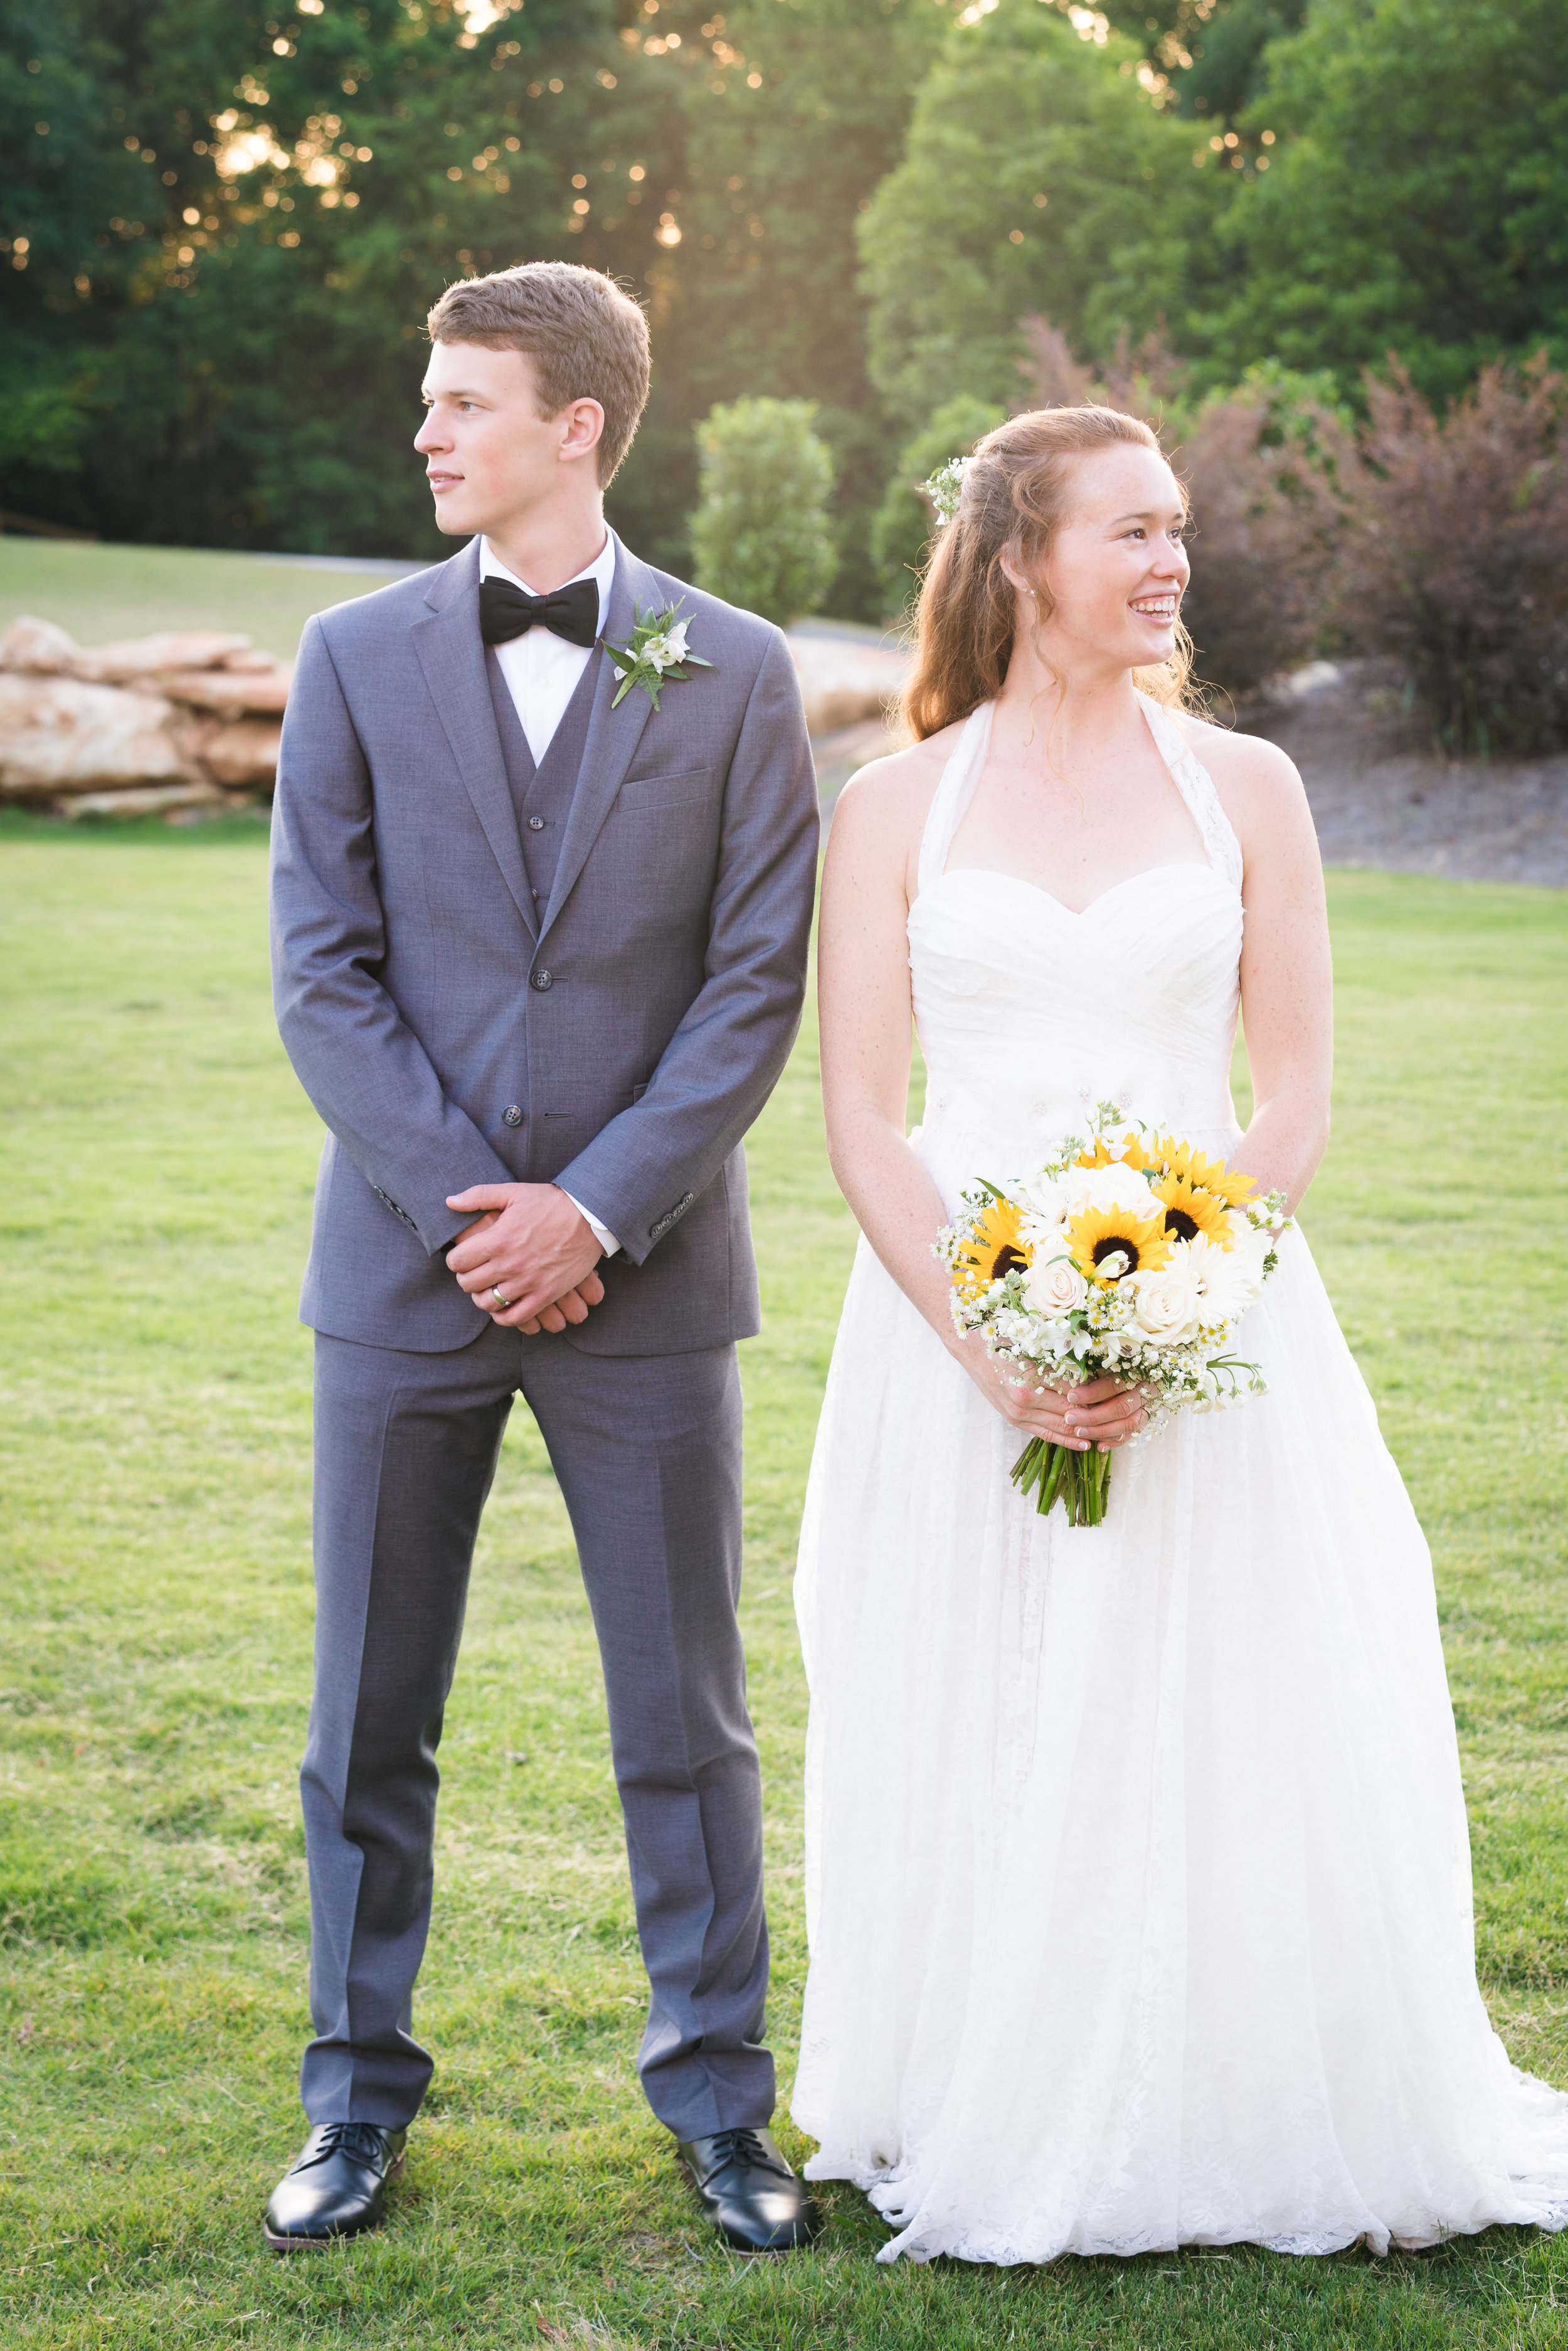 Bride and groom portrait | Windy Hill Wedding and Event Barn in Simpsonville, SC